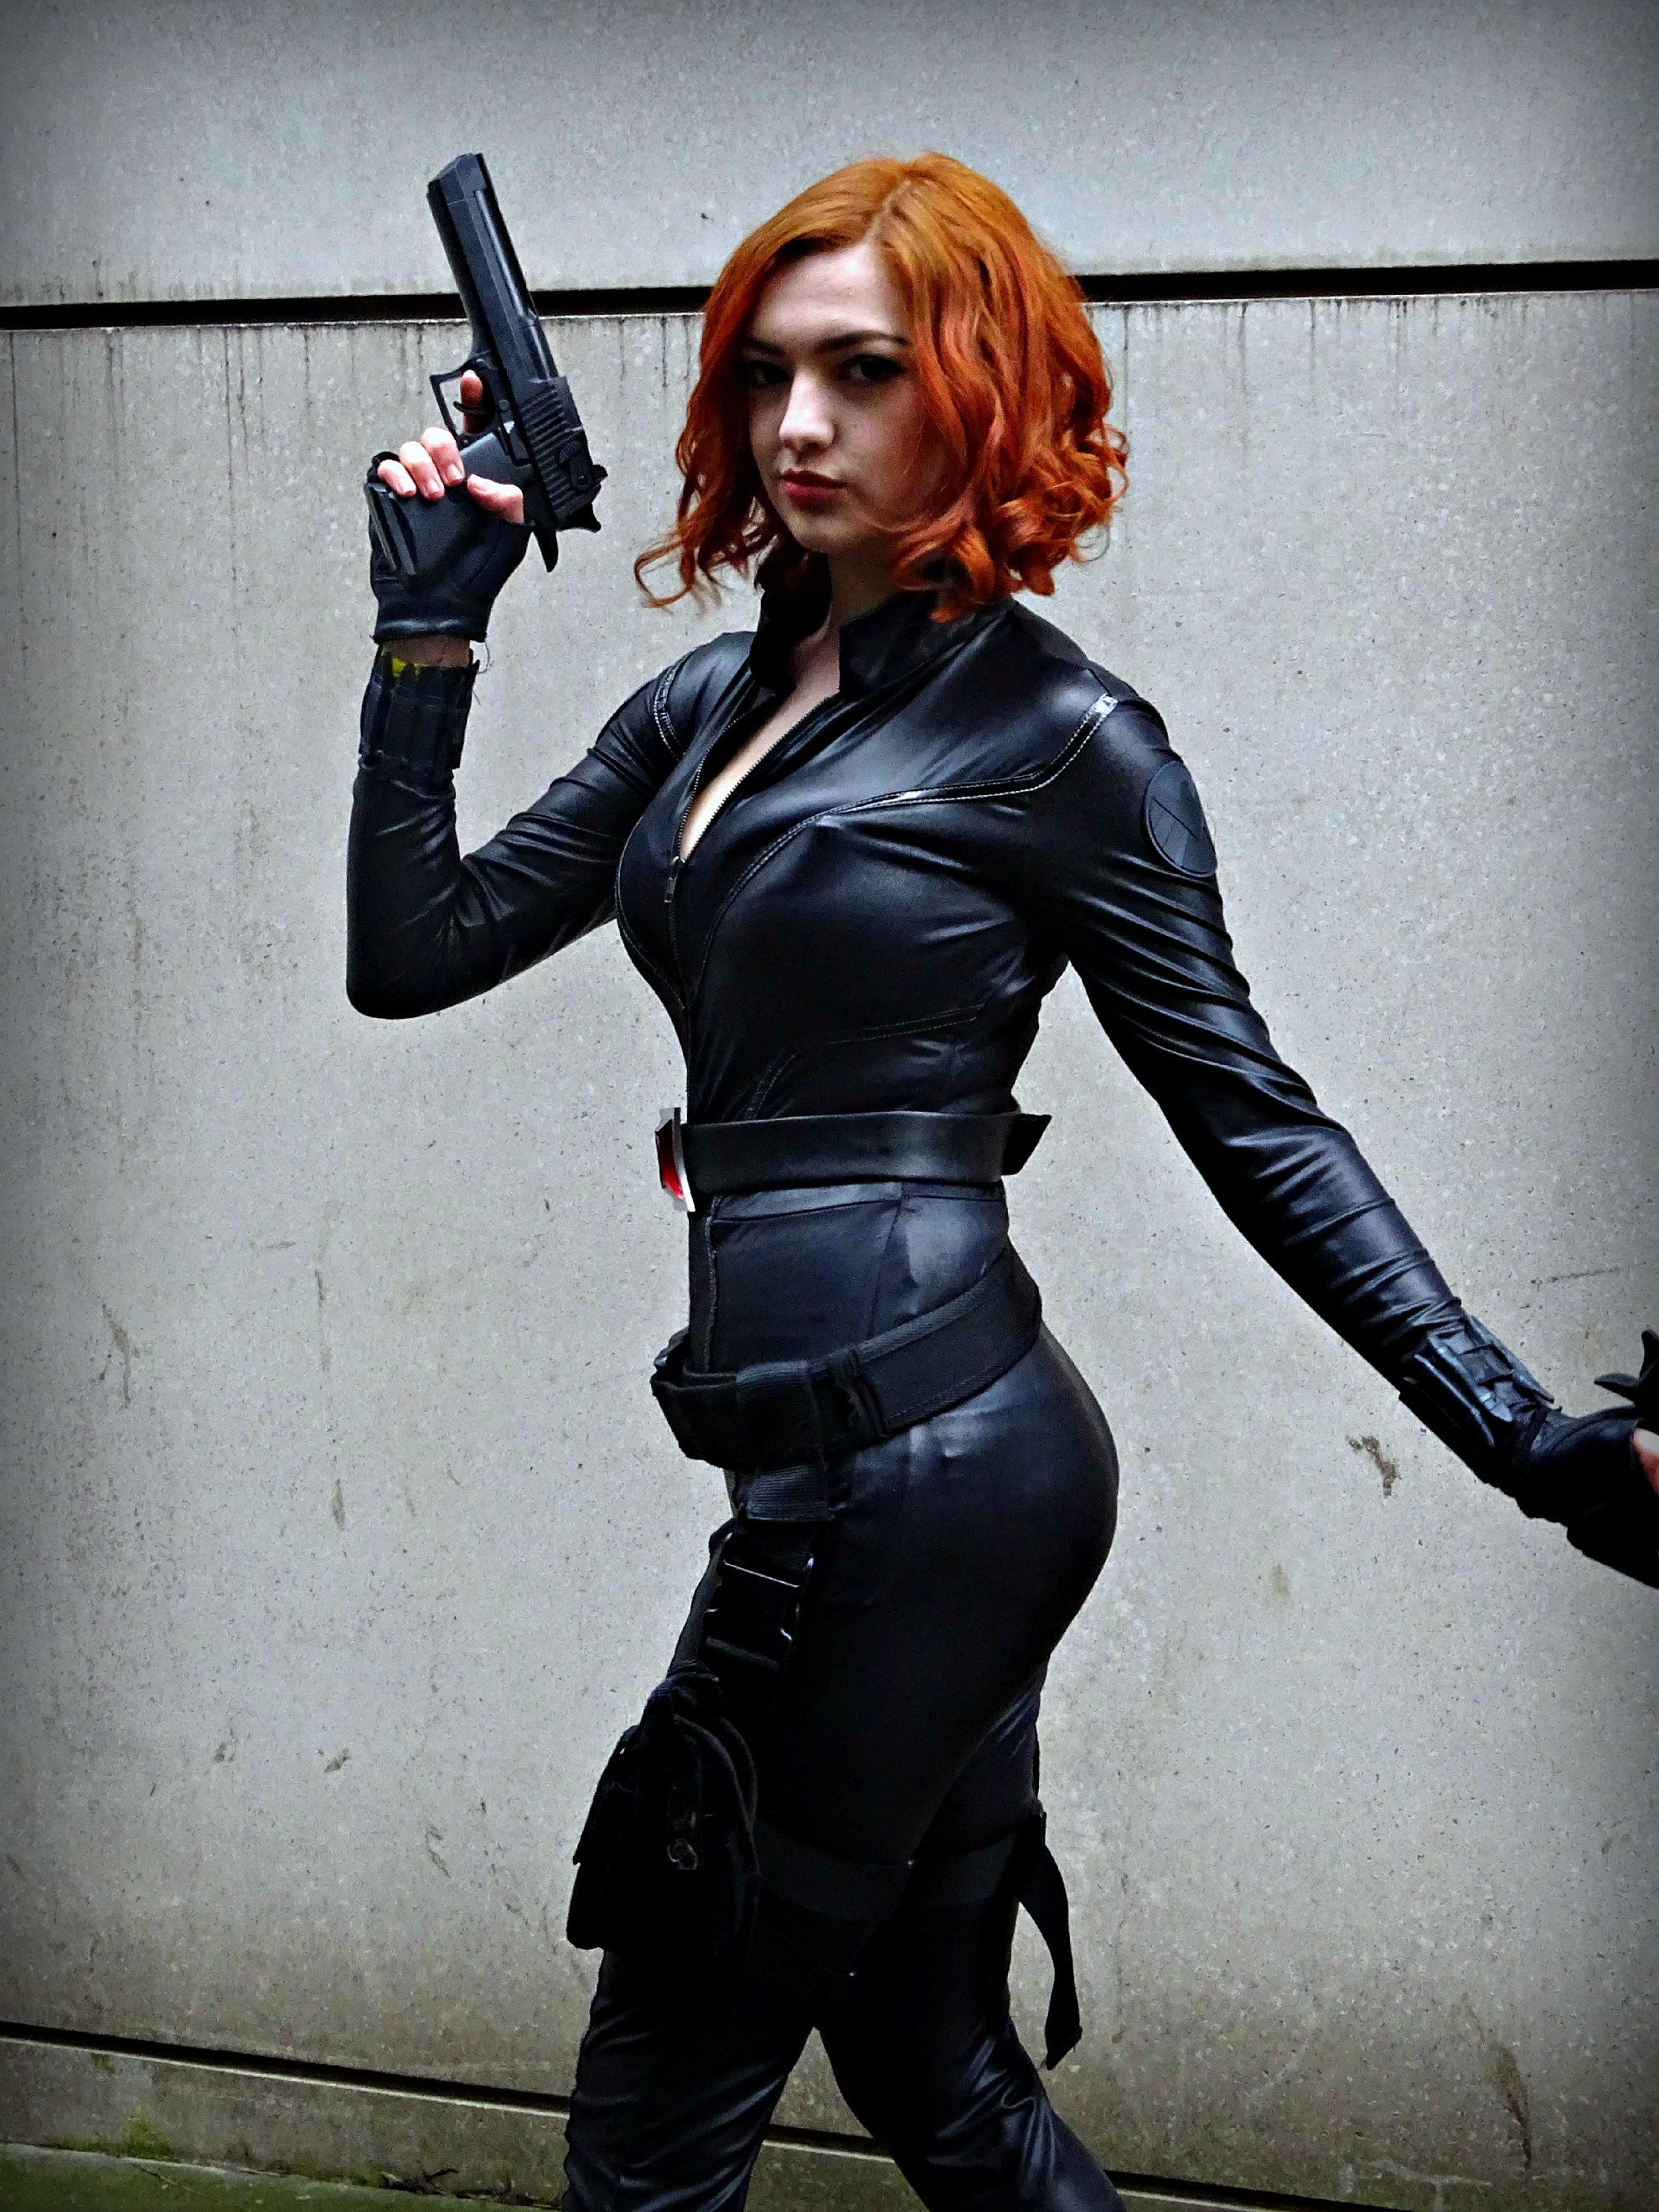 graceless cosplay marvel black widow cosplay edinburgh comic con 2016 cosplay black widow. Black Bedroom Furniture Sets. Home Design Ideas